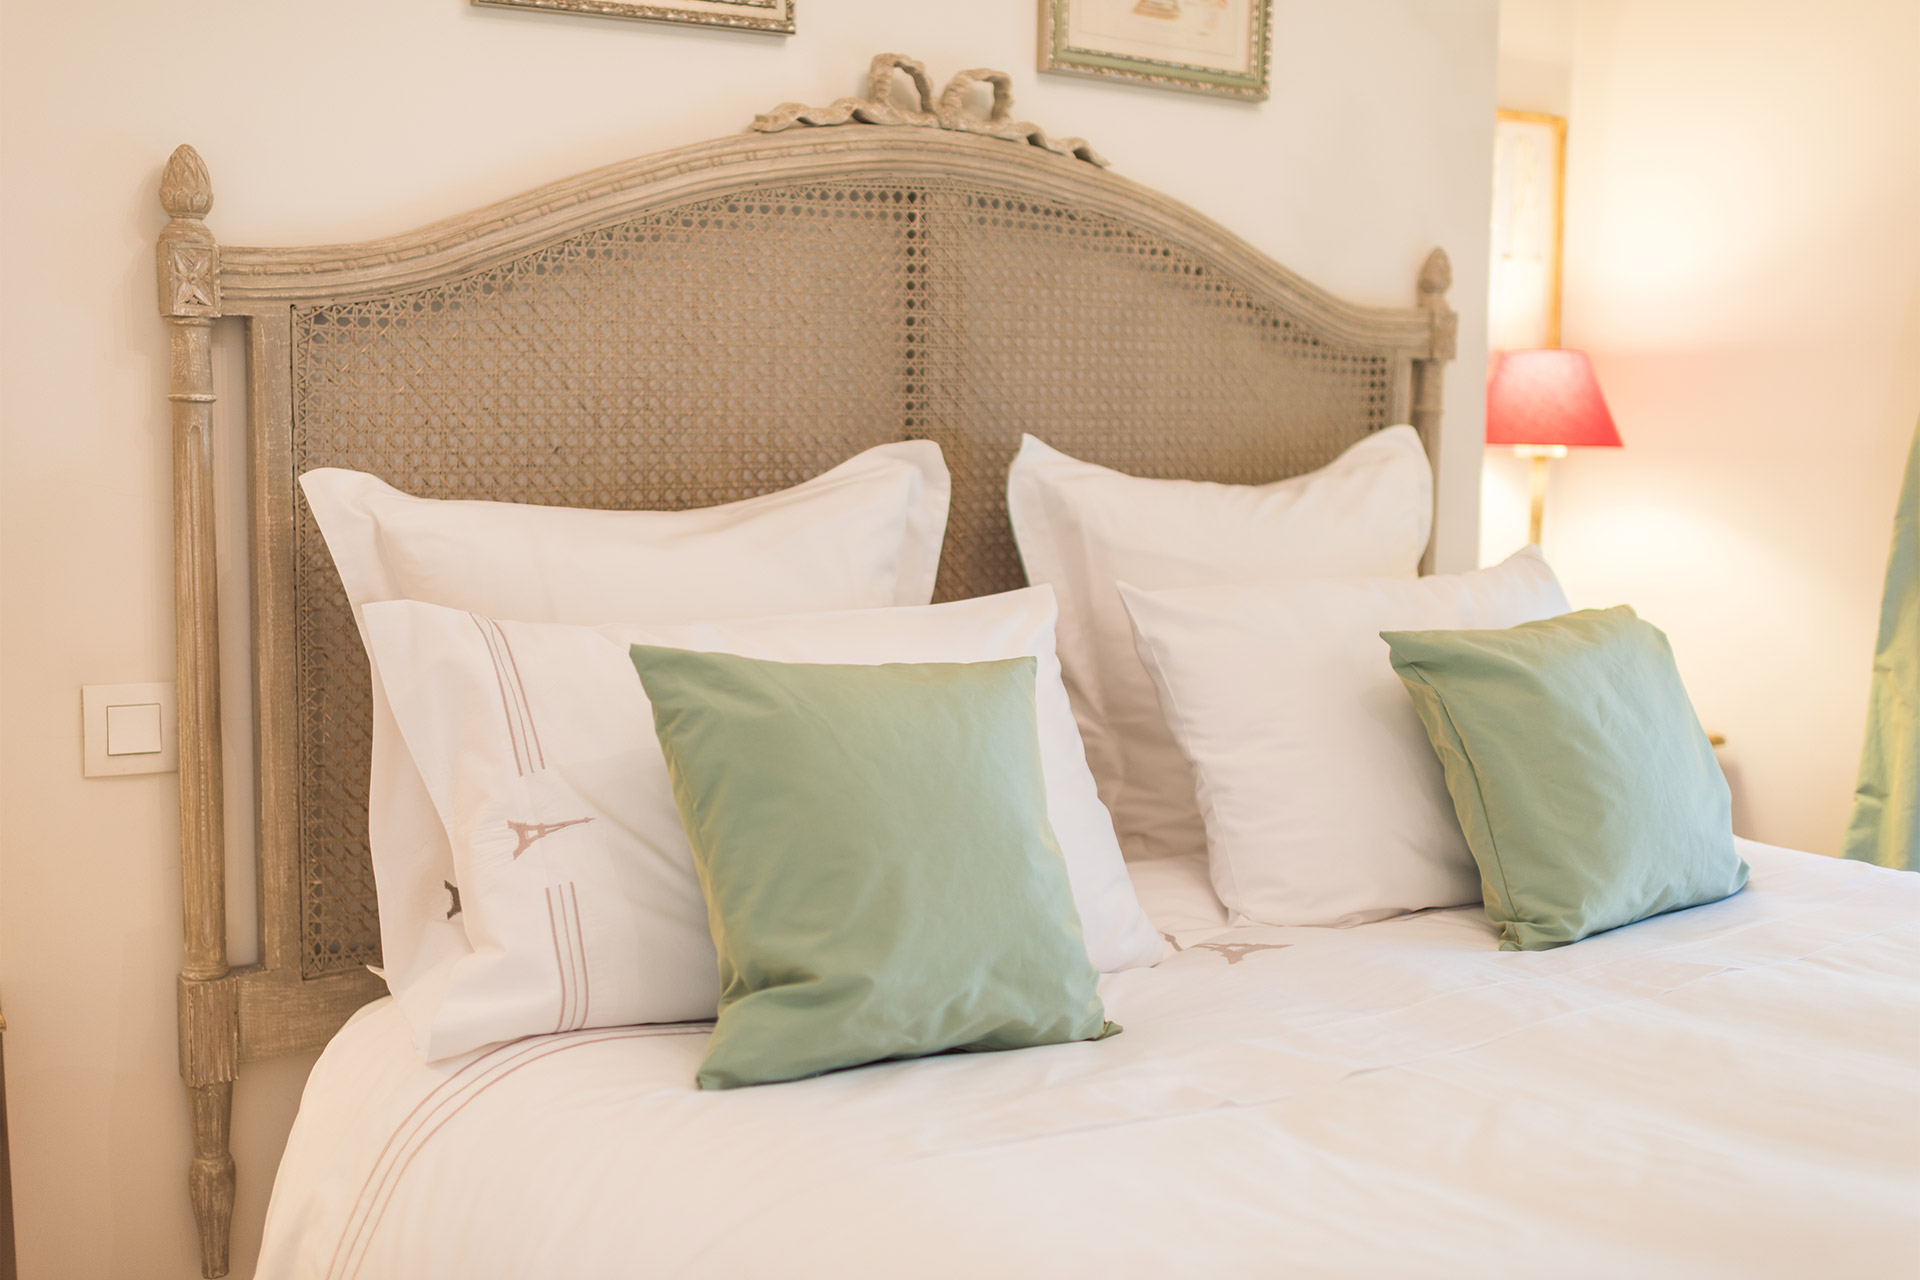 Comfortable bedding in the Calvados vacation rental offered by Paris Perfect